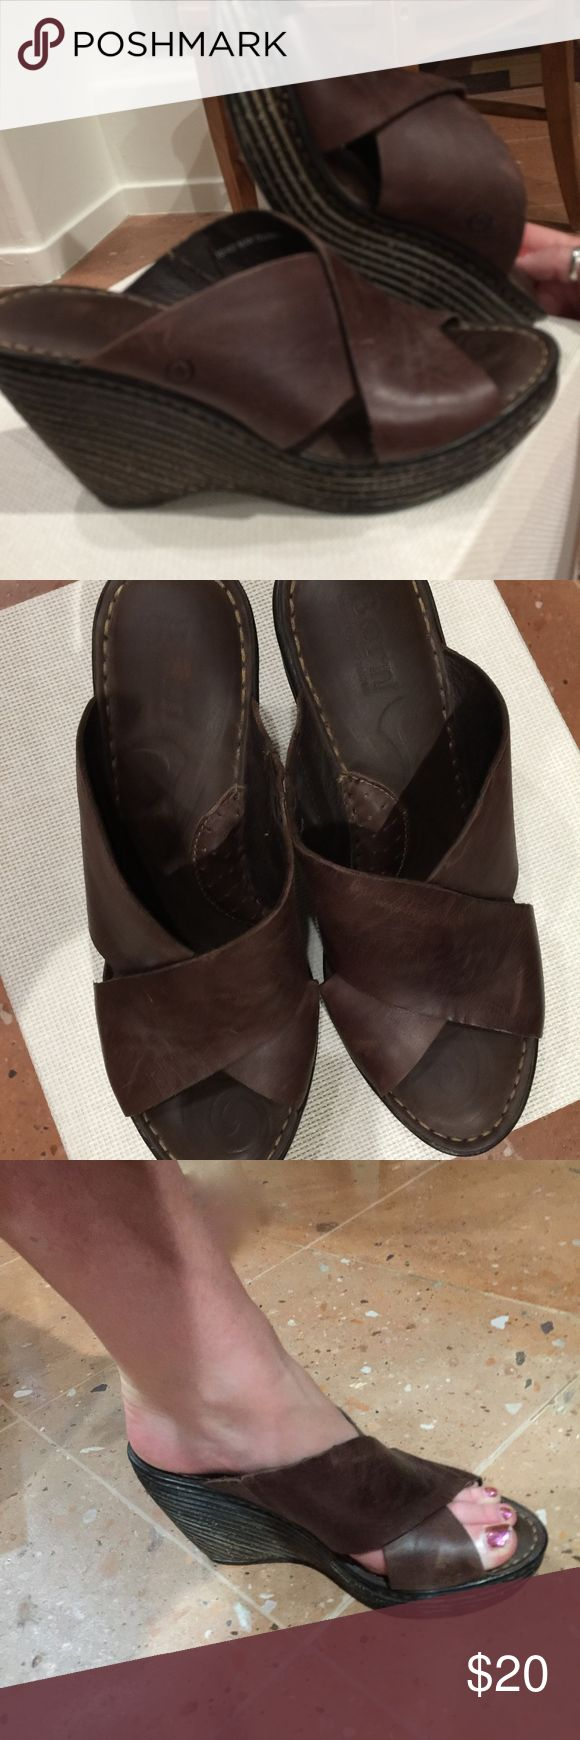 Born wedge open toe mules Born open toe wedge mule - really comfortable only wore twice love them (just don't have anywhere to where them too) leather - elastic insert on one side - bottoms are not dirty that is the design say size 10 - model 9 / 9.5  Borns do run small Born Shoes Wedges